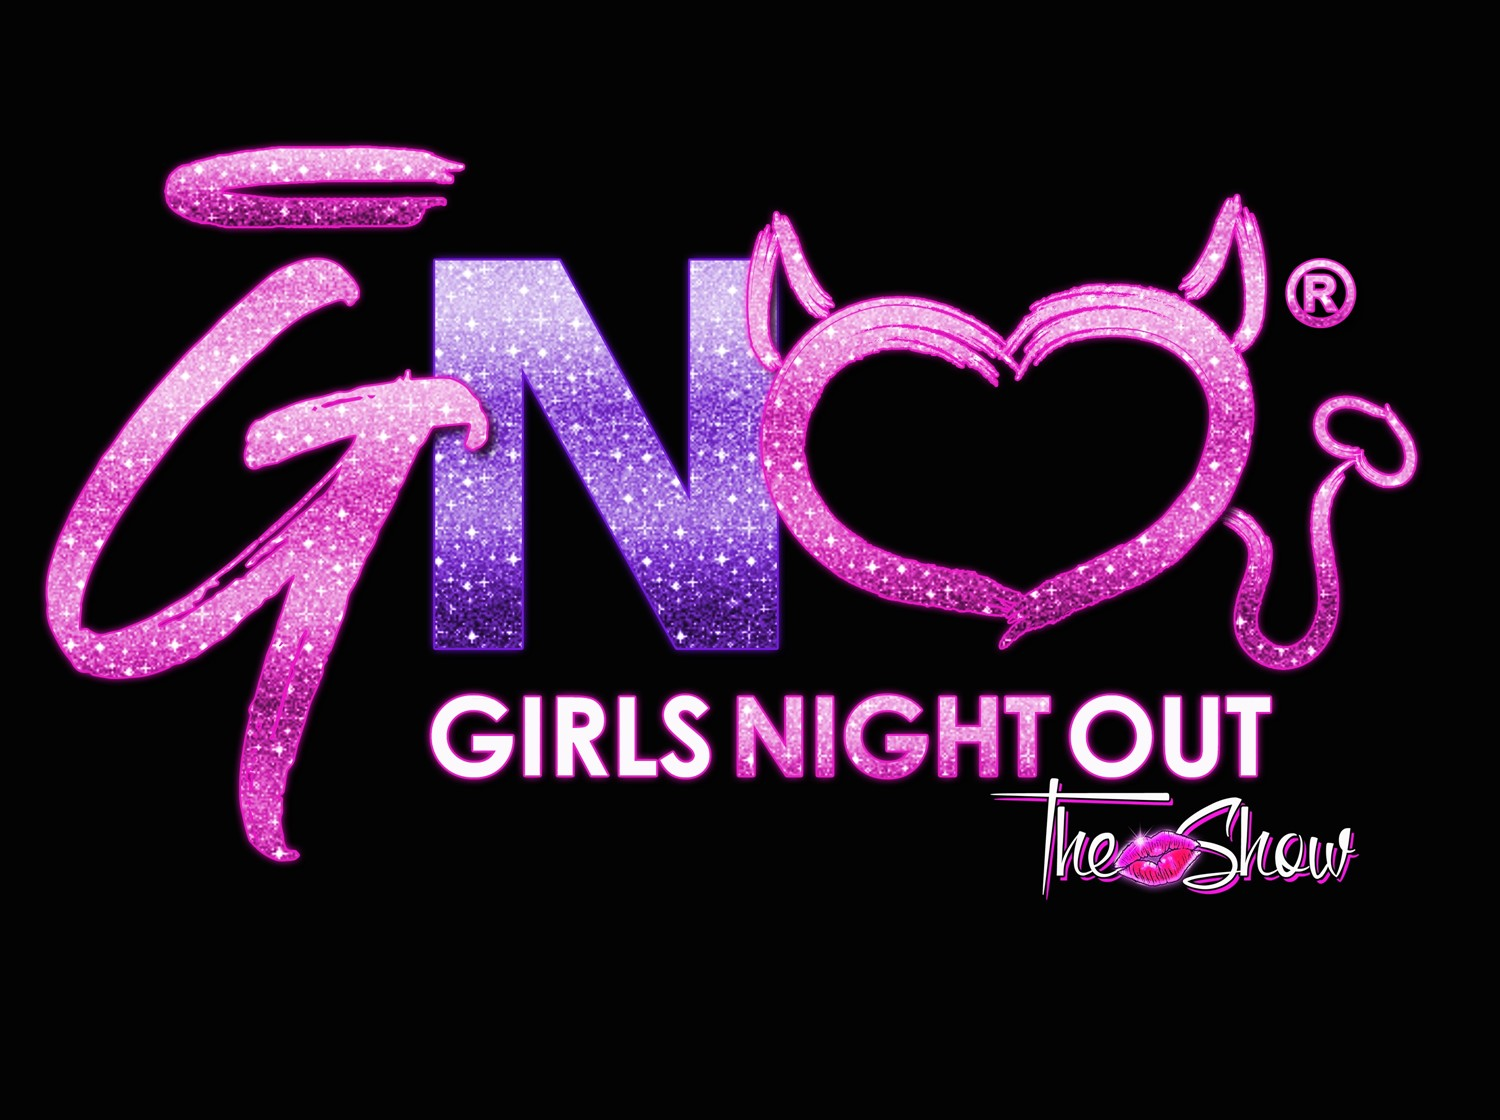 Pinka Art Bar (18+) Apopka, FL on Jun 14, 20:00@Pinka Art Bar - Buy tickets and Get information on Girls Night Out the Show tickets.girlsnightouttheshow.com